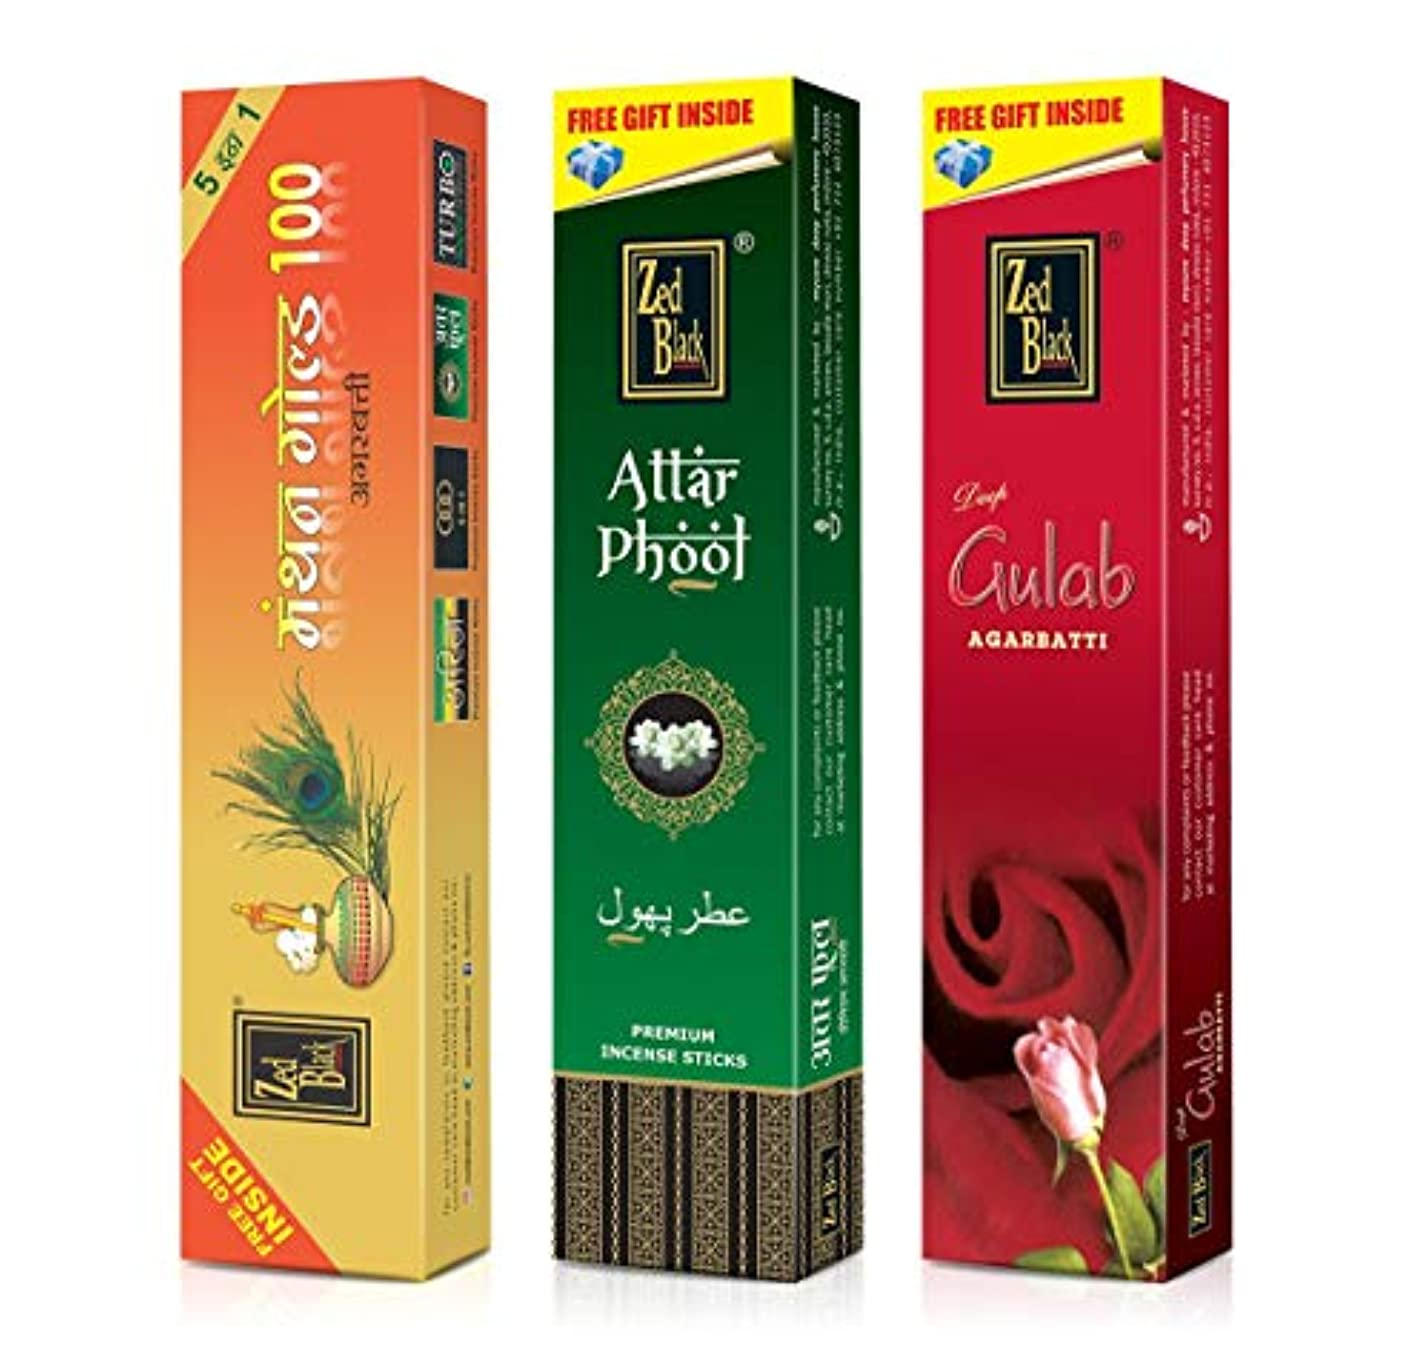 癌ストラトフォードオンエイボン確かなZed Black Incense Sticks Combo of Manthan Gold 100, Attar Phool & Deep Gulab